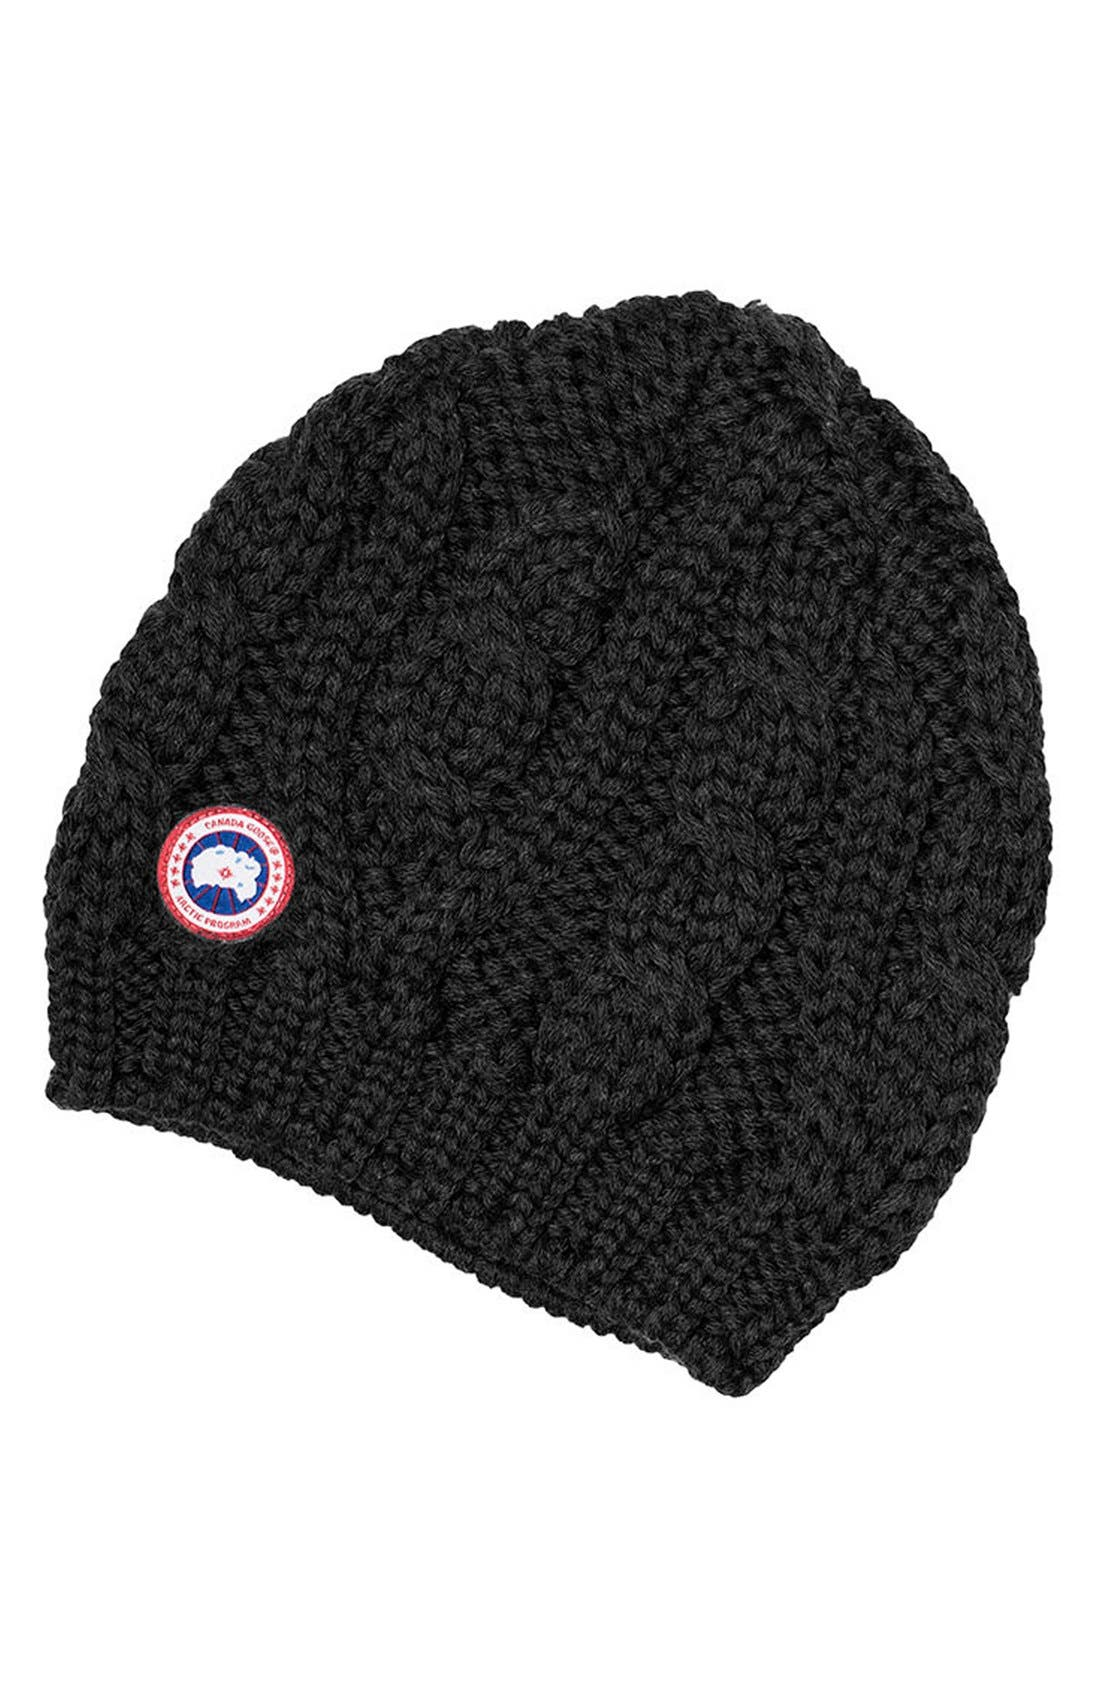 Canada Goose Cable Knit Merino Wool Beanie